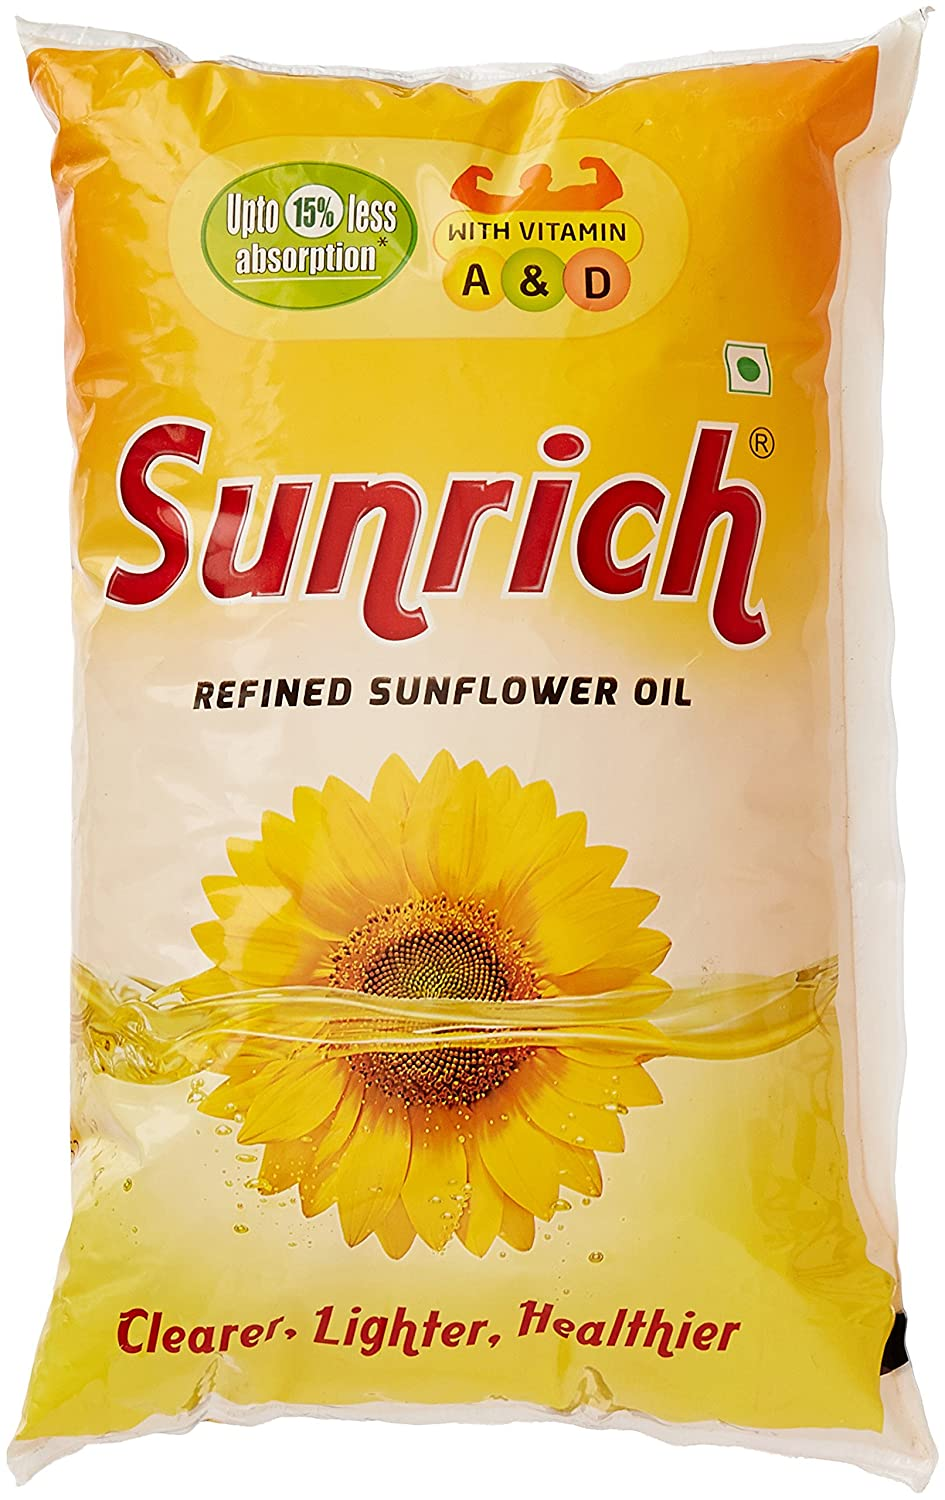 Sunrich Refined Sunflower Oil Pouch.